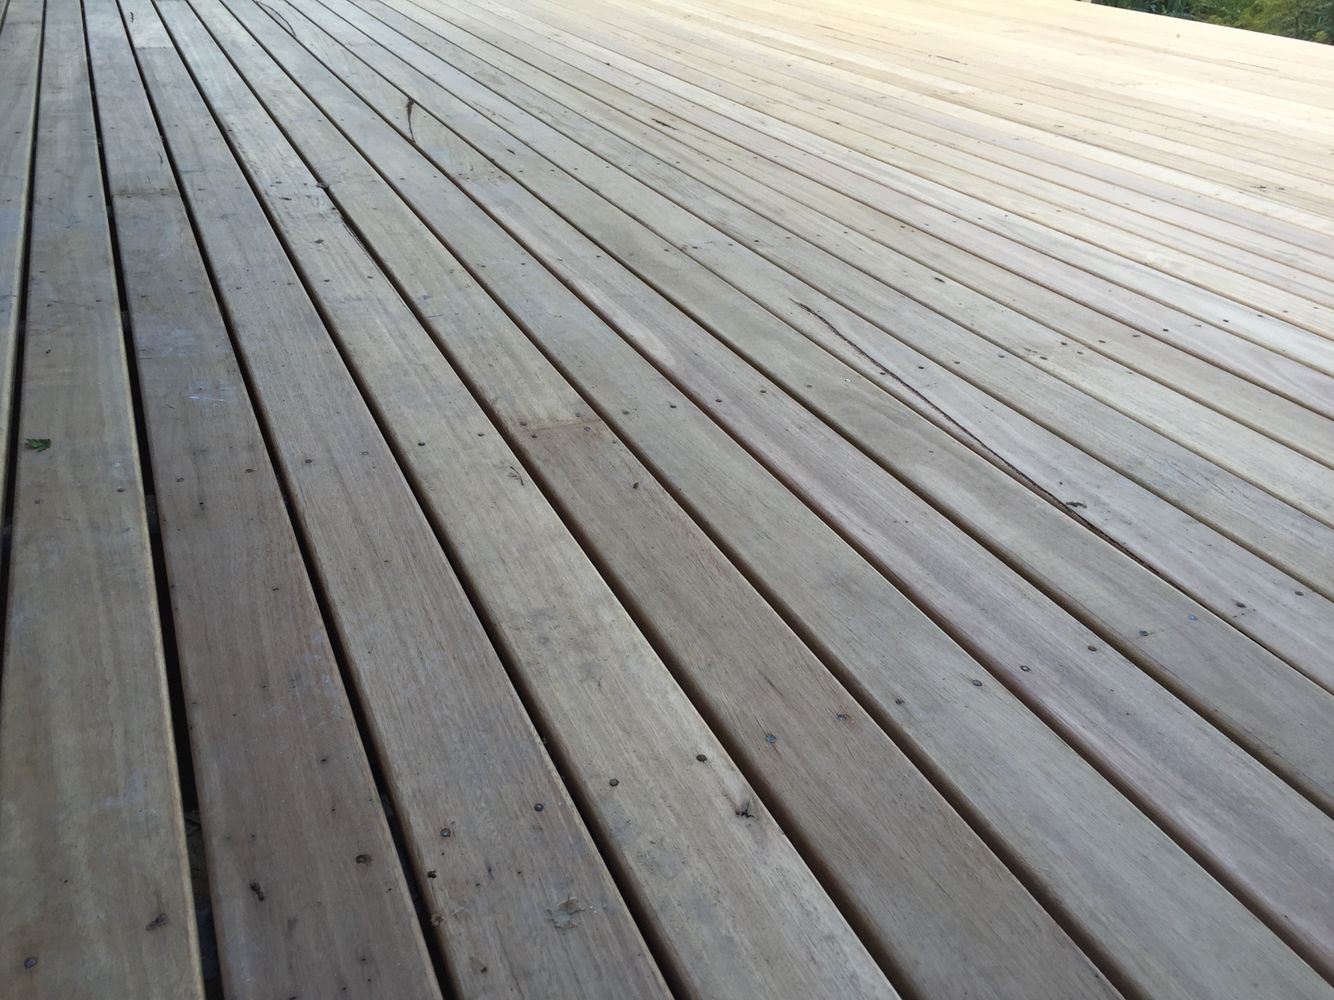 Australian hardwood decking It's versatile, tough, sands